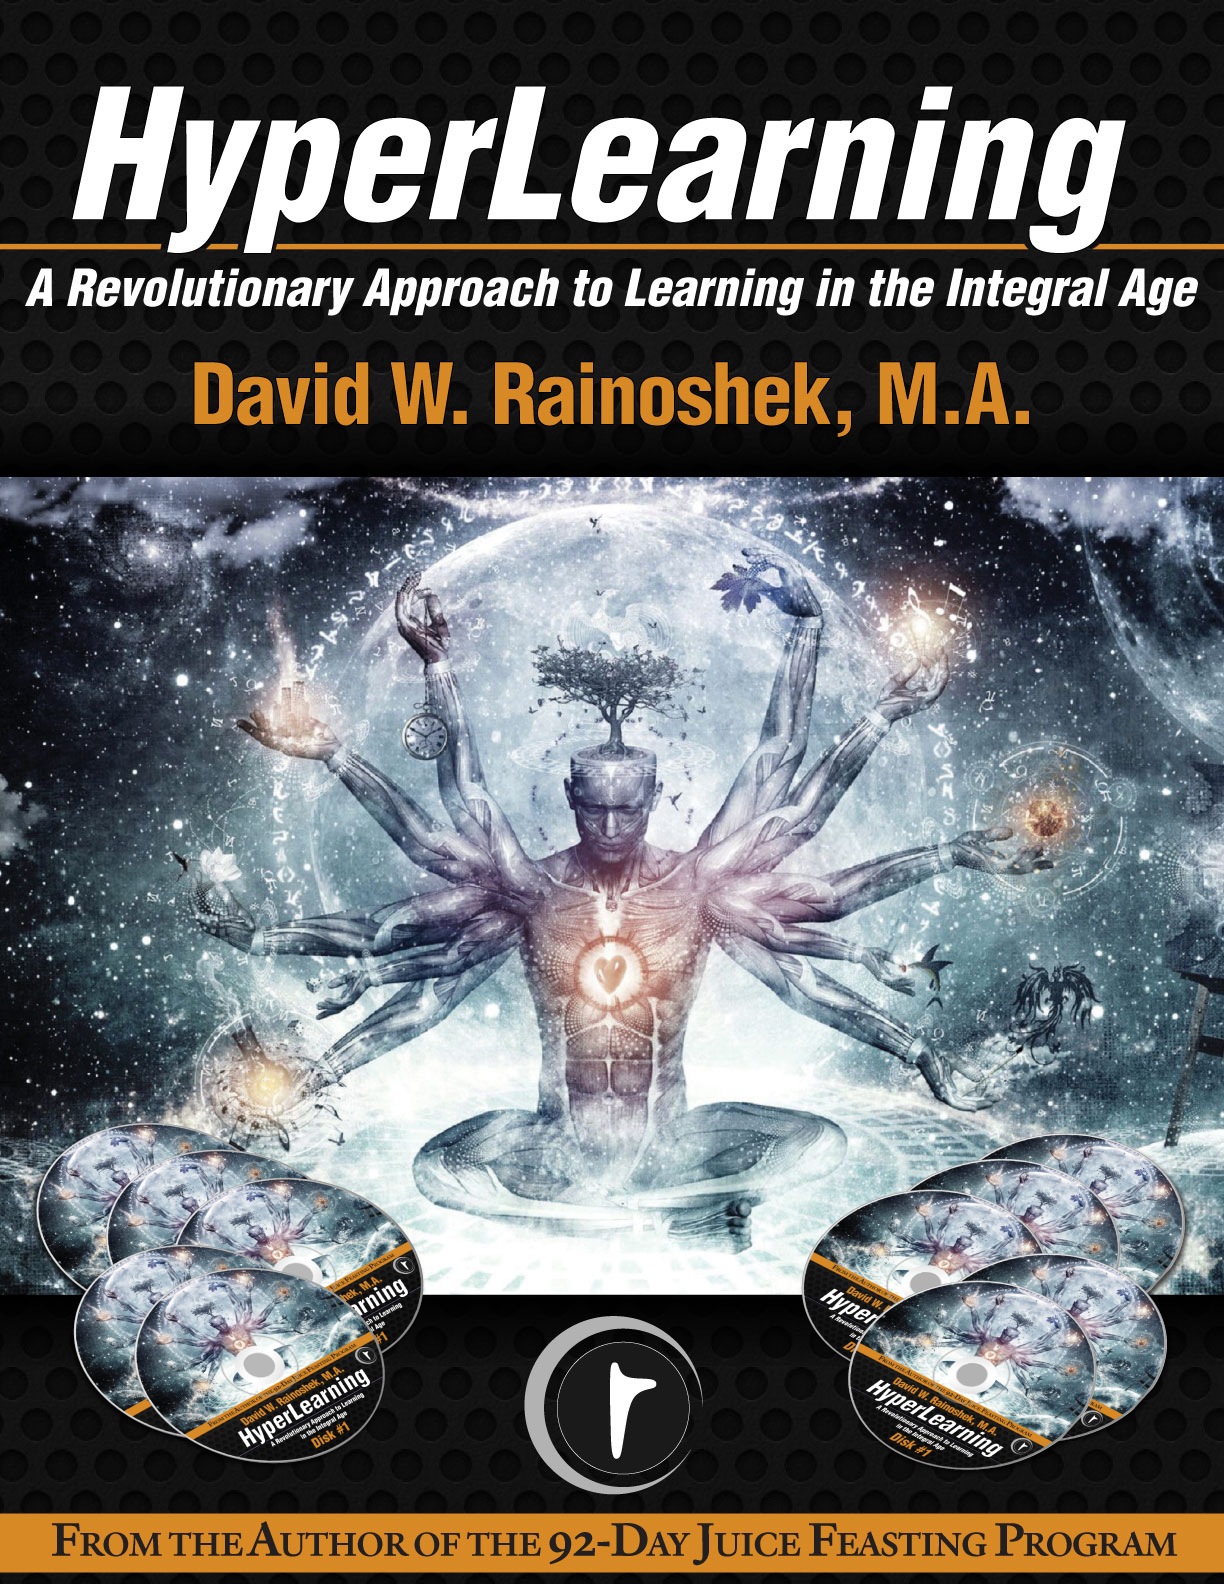 HyperLearning: A Revolutionary Approach to Learning in the Integral Age - by David Rainoshek, M.A.There is a new mind, a new culture, a new level of compassion, care, and creativity that is arising worldwide in people like YOU… who yearn for a new way of thinking, a new way of being, an updated vision of who we are together, and where we are going… a positive, dynamic, creative, growth-oriented, integrative, hopeful, next-level vision of the future.HyperLearning is part of this next level, this next stage in human evolution.What you are about to discover is not just how to learn faster, or even better, but how to cultivate the deepest drives and orienting perspectives behind the learning that set your mind, heart, and soul on fire.Your purpose, ability, and depth of learning is about to leap beyond almost everyone who has ever lived…